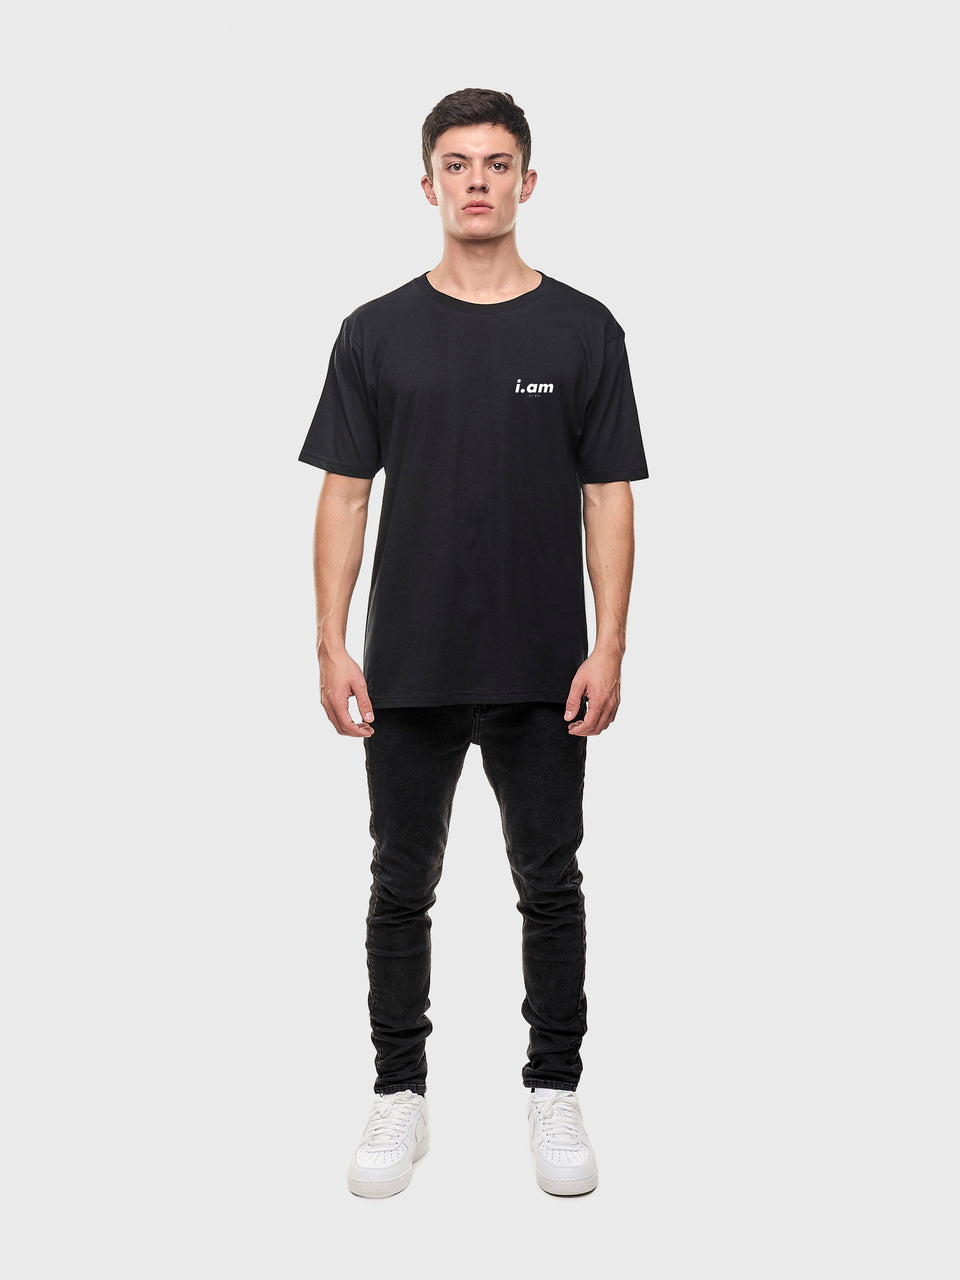 Making it - Black - Unisex T